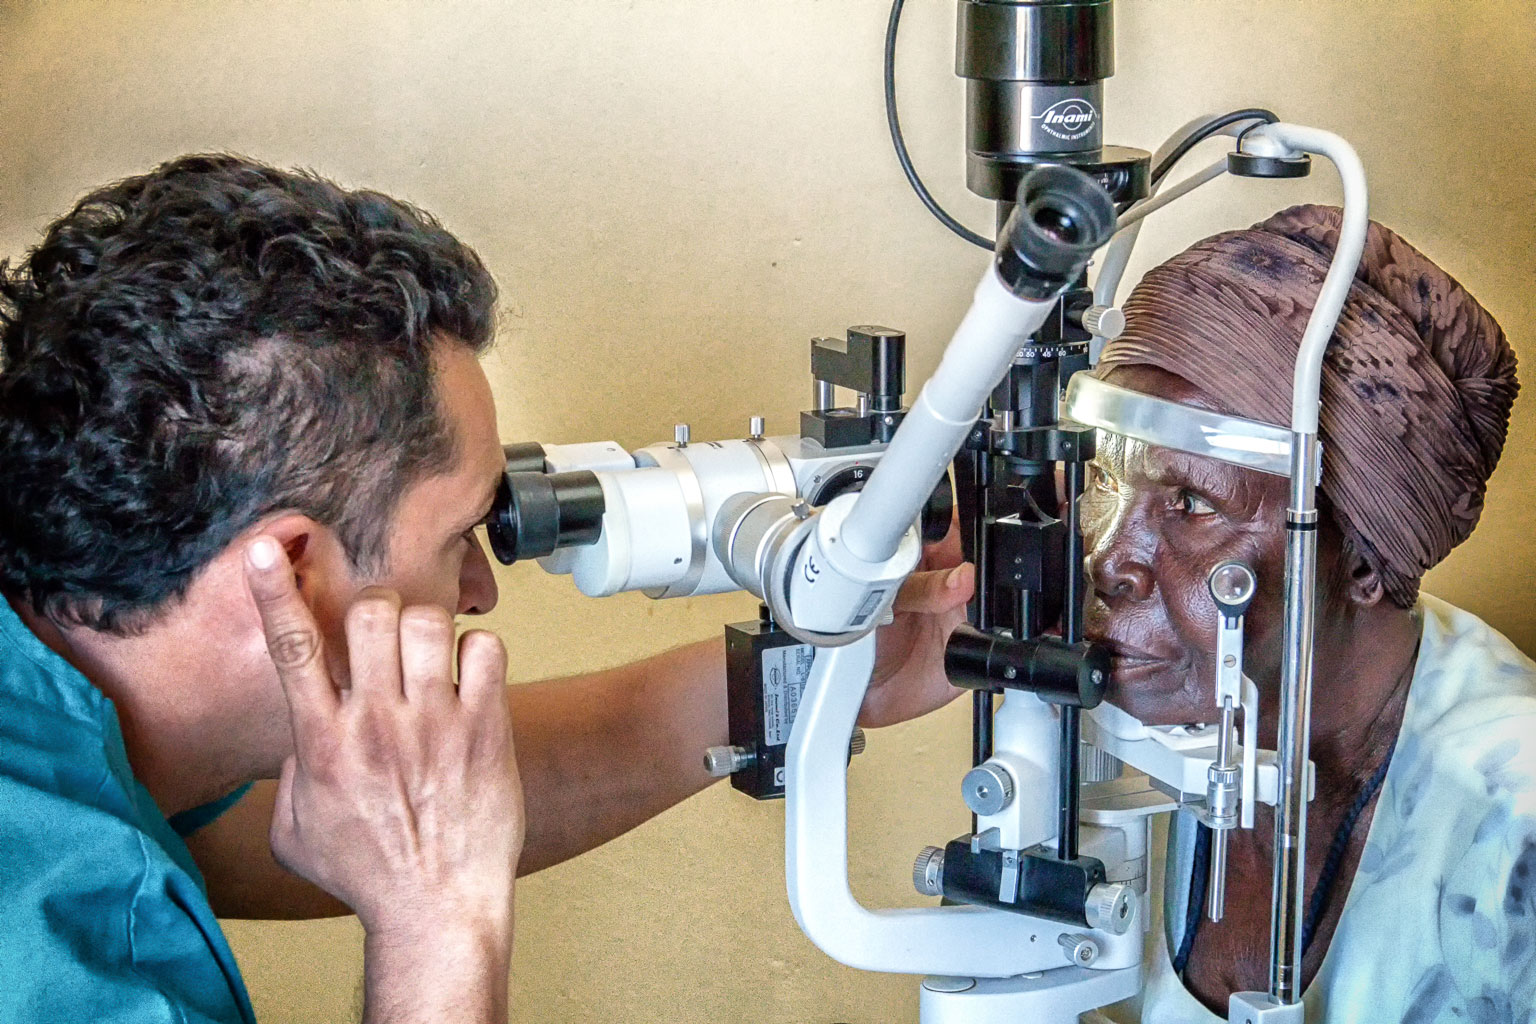 Prescreening for cataract surgery candidates.